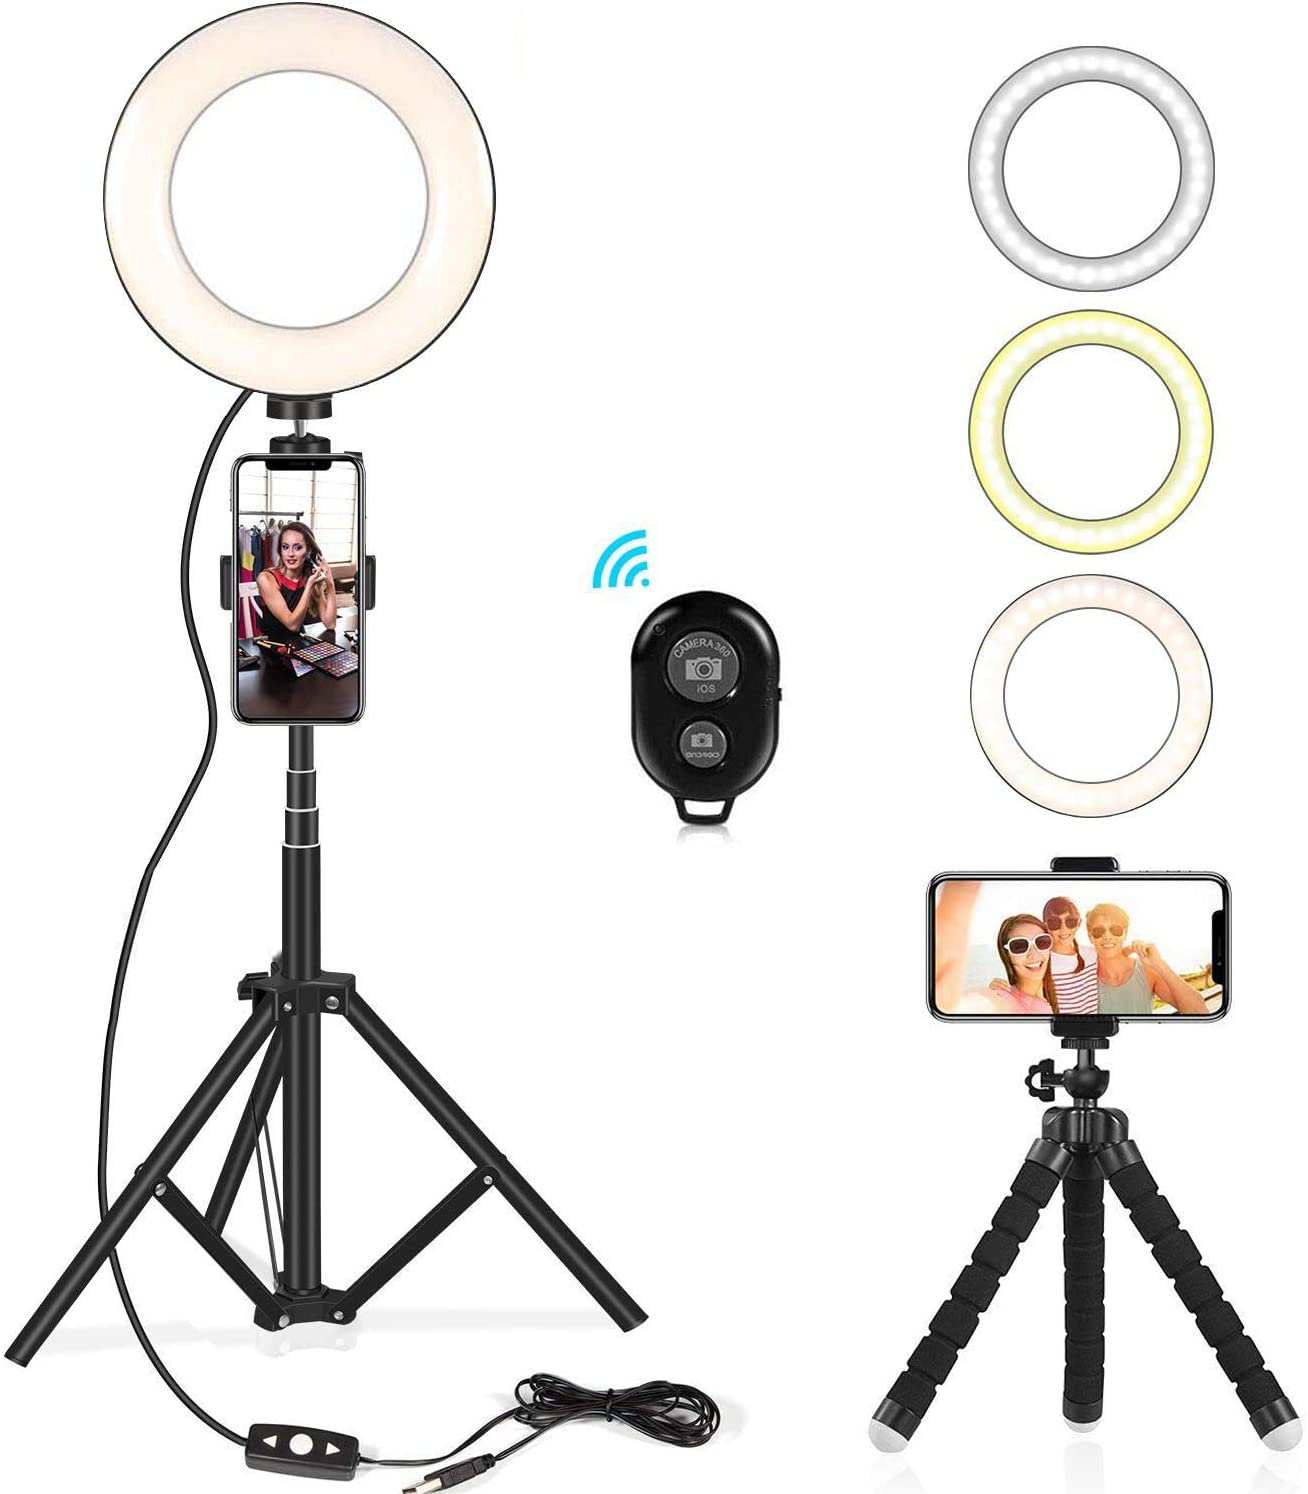 """Selfie Ring Light Kit 6.5"""" with Extendable Light Stand, Flexible Tripod Stand & Cell Phone Holder for YouTube Video Shooting/Live Stream/Makeup/Vlogs/Desktop with 3 Light Modes for iPhone, Android"""